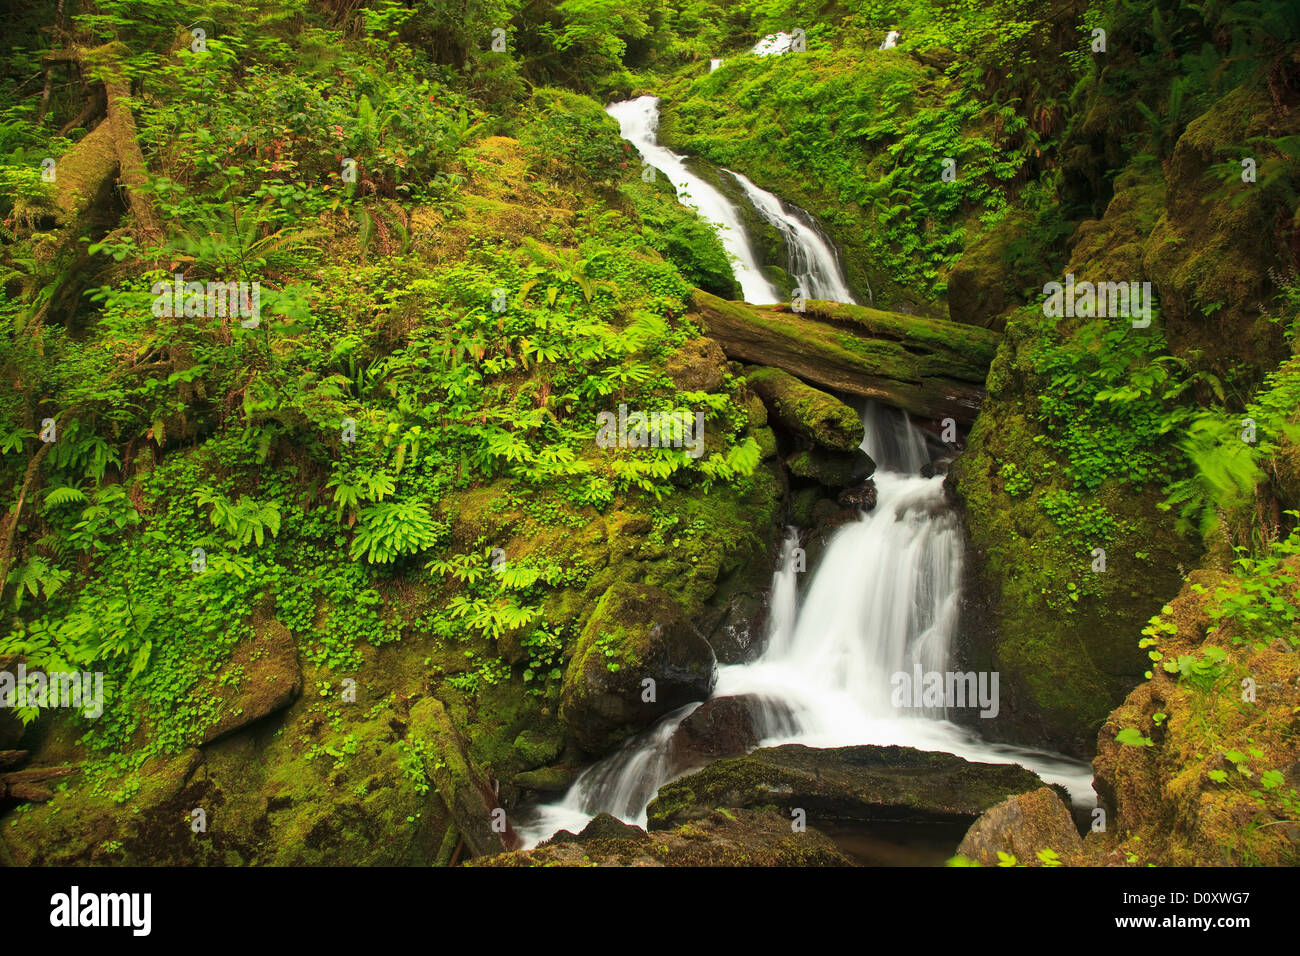 Saisonale Bach, Graves Creek Gegend, Olympic Nationalpark, Washington, USA Stockbild